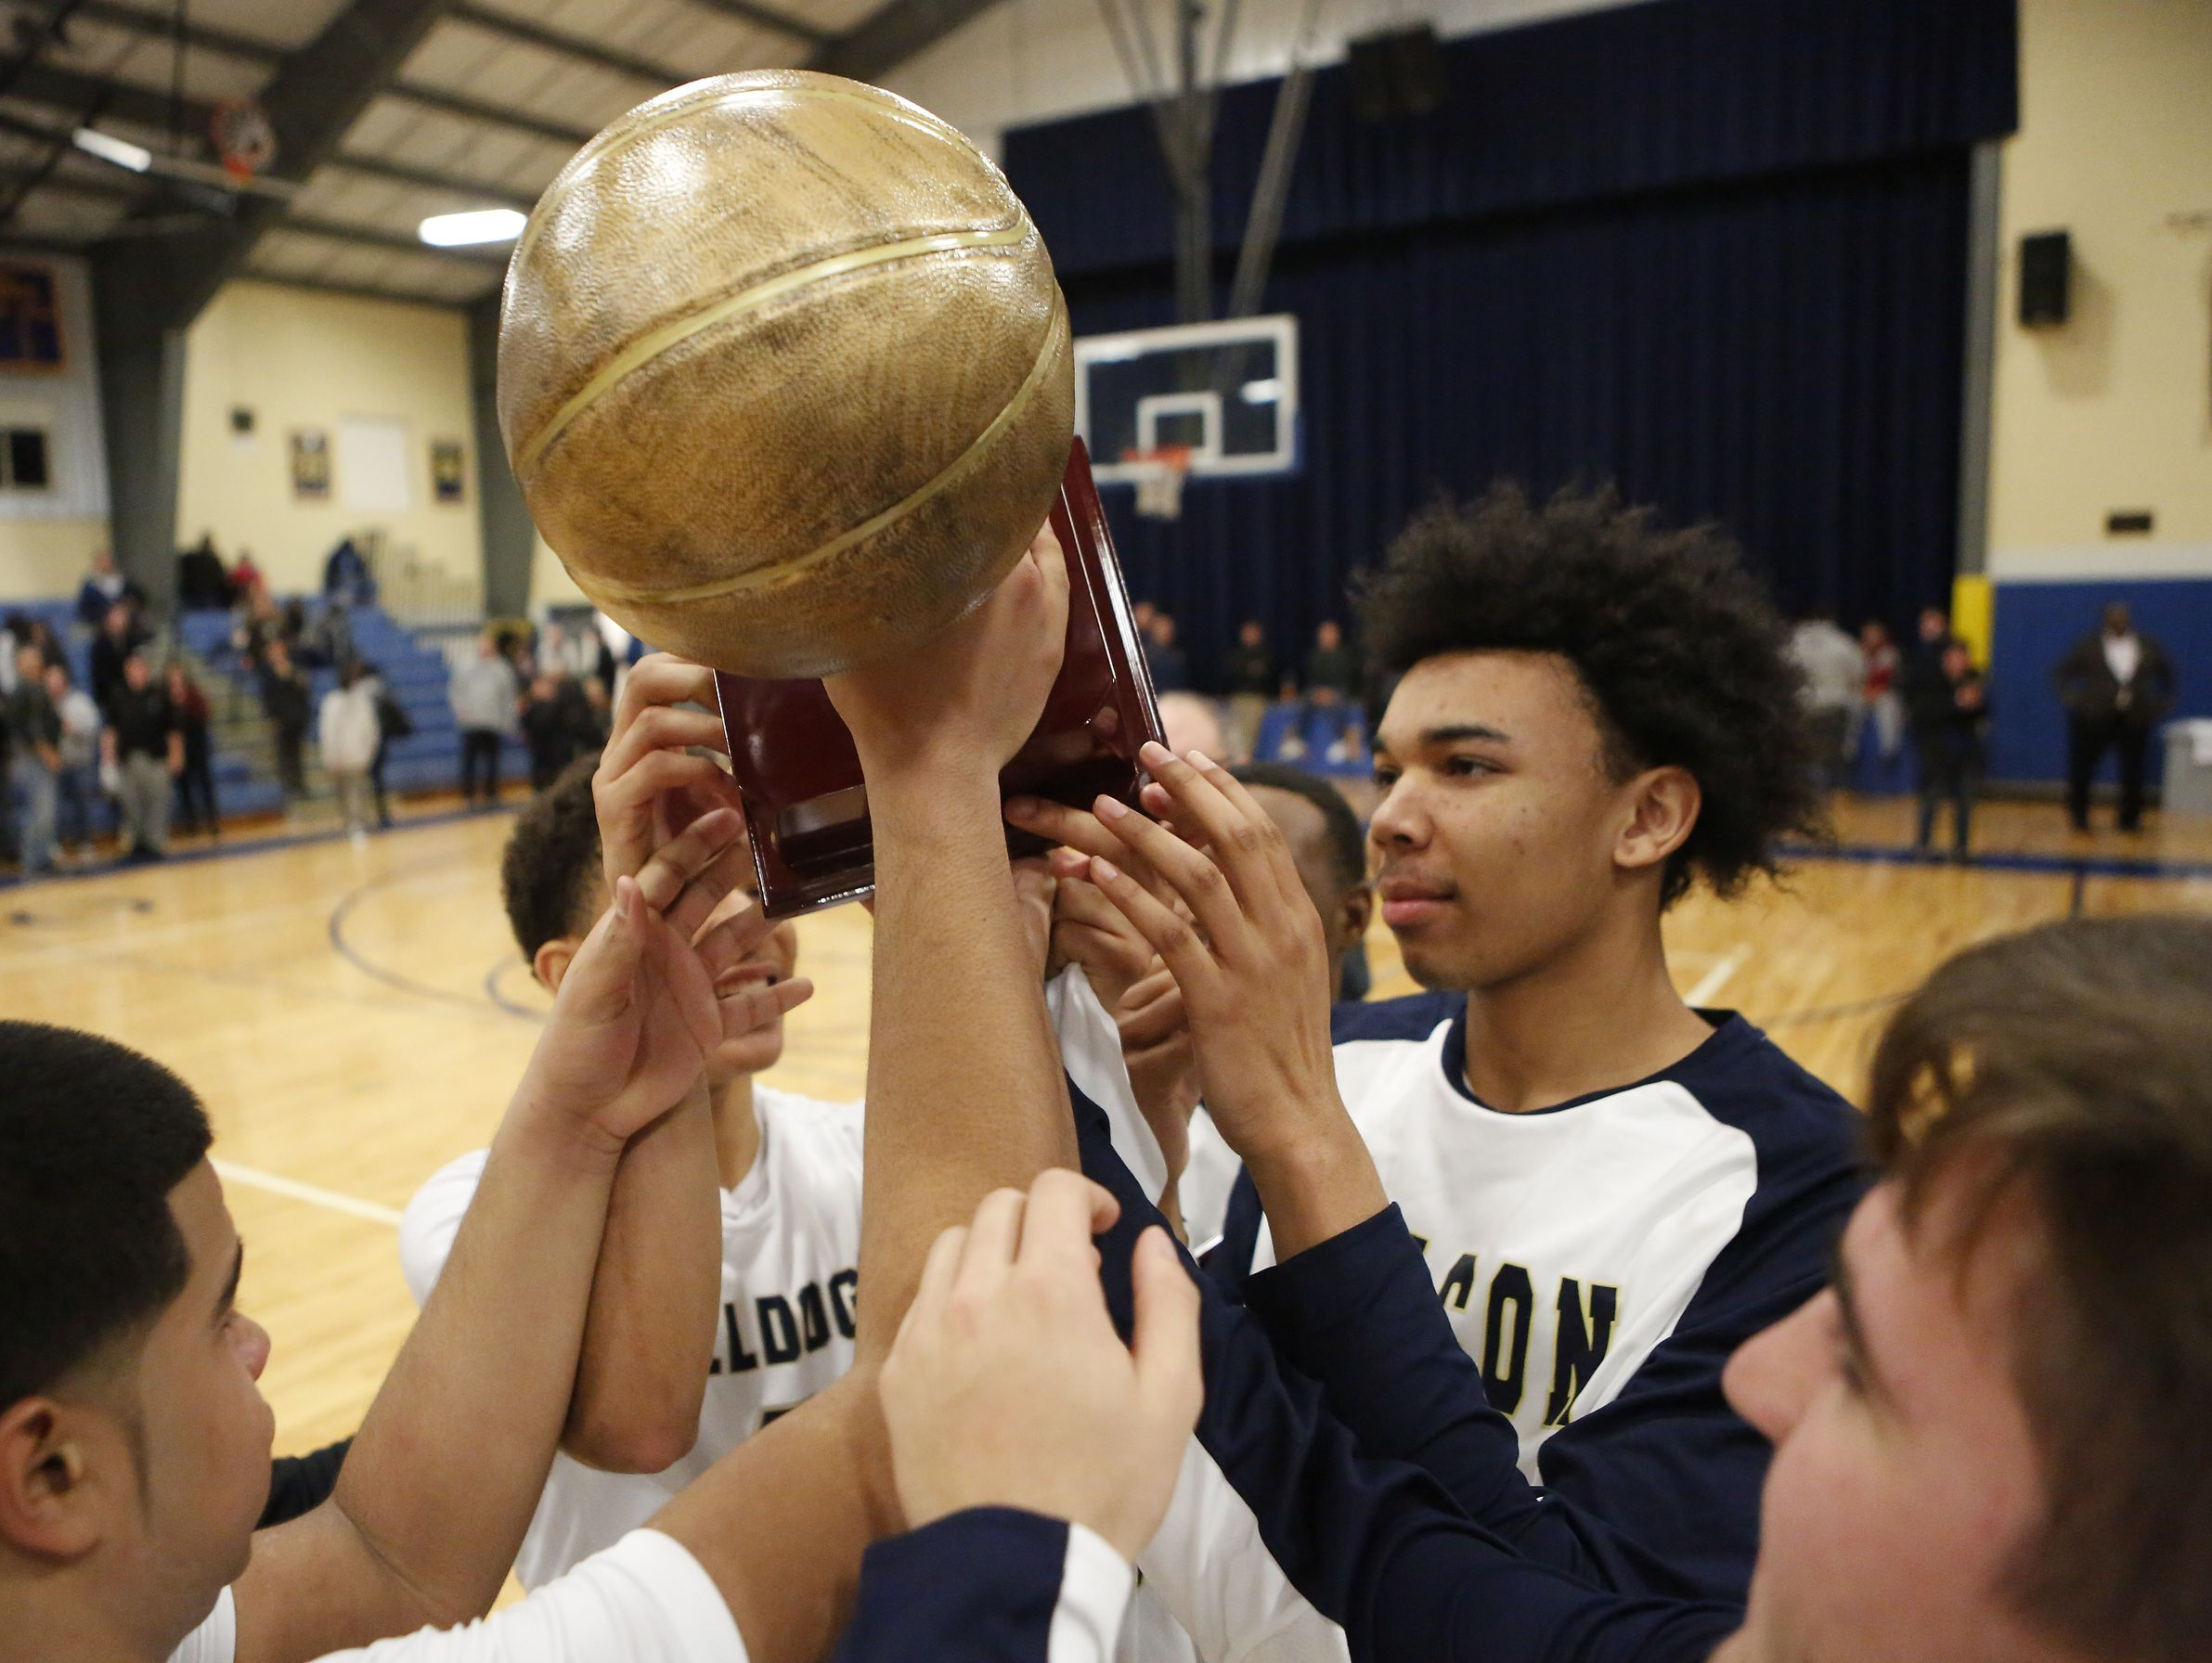 Beacon players hoist the trophy after defeating Spackenkill 76-64 in the championship game of the Duane Davis memorial basketball tournament at Our Lady of Lourdes High School in Poughkeepsie on Saturday, December 31, 2016.